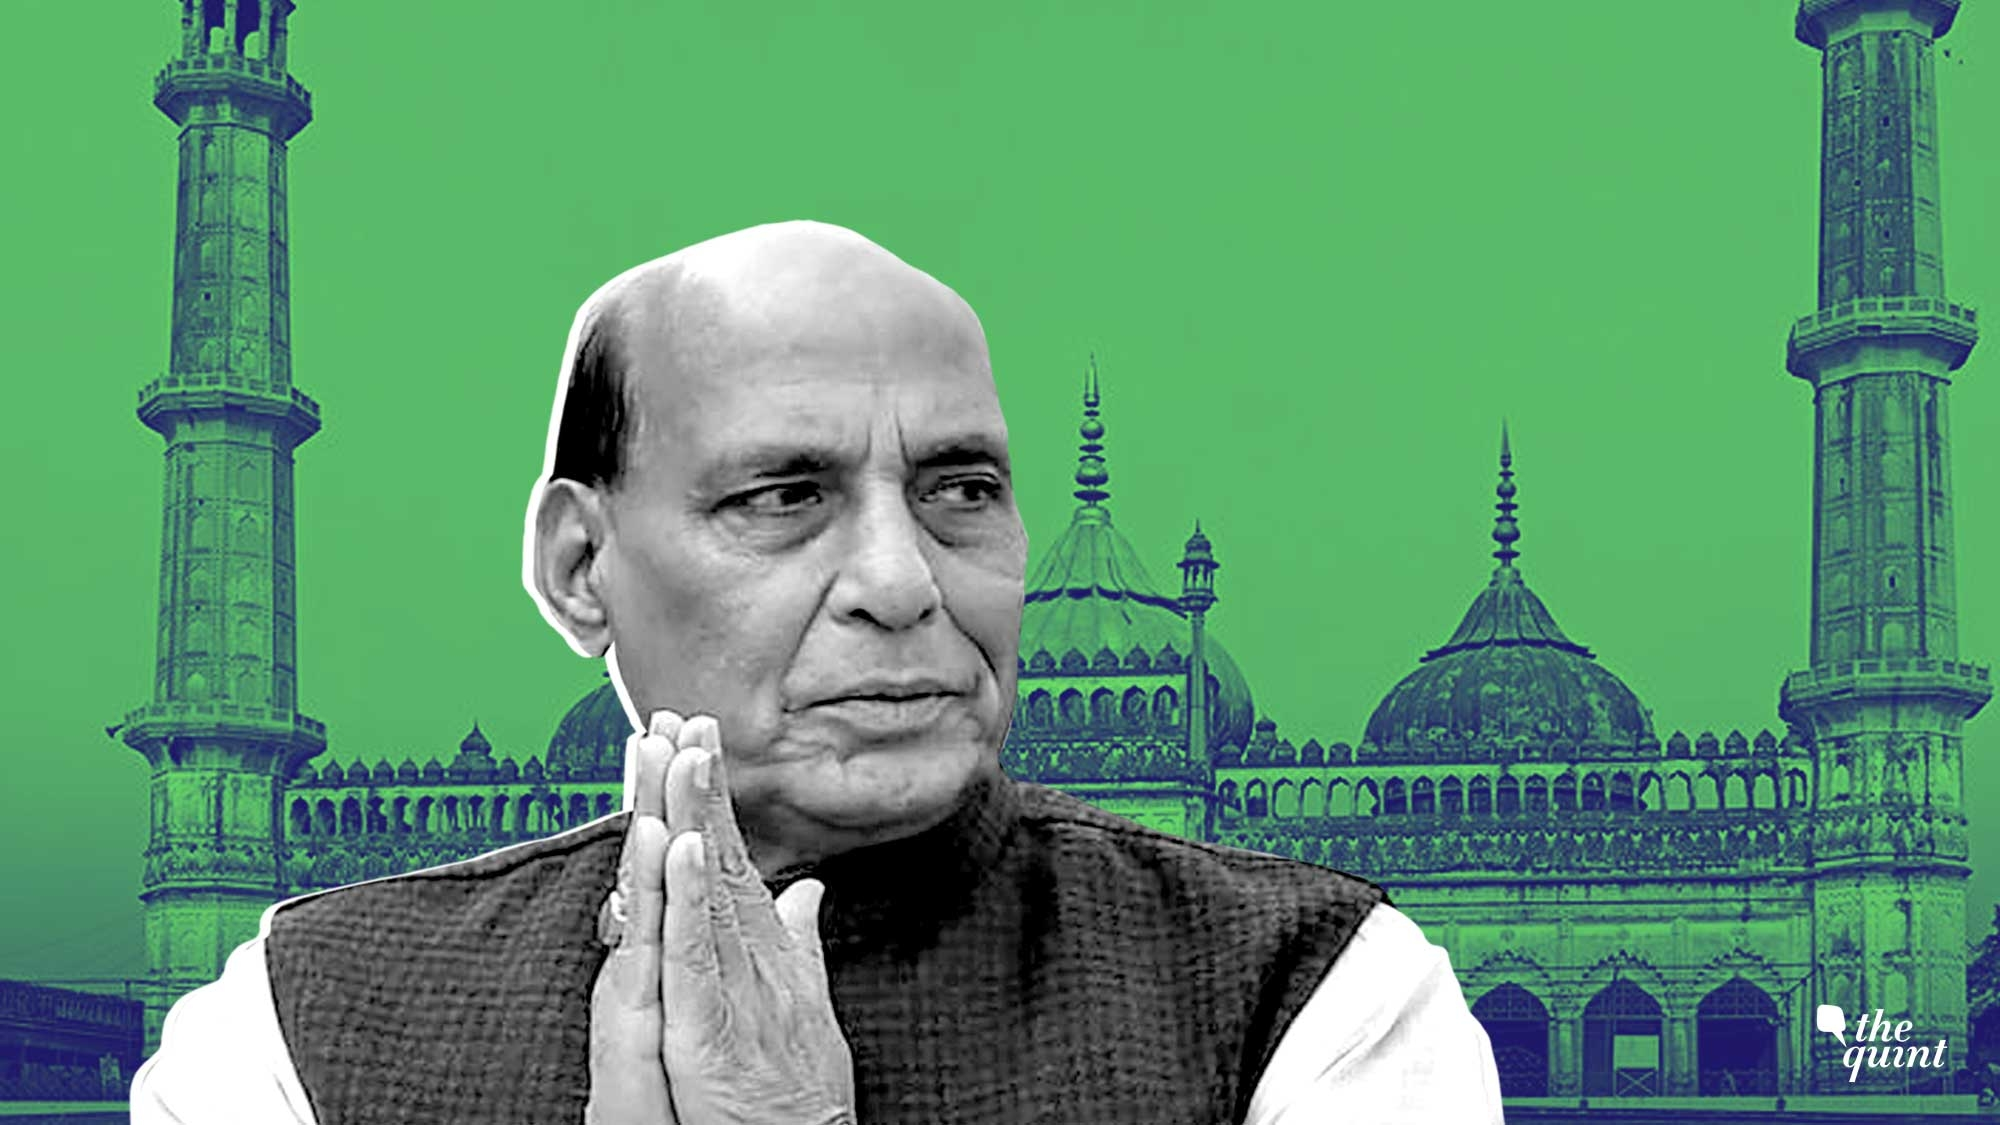 Will Rajnath Singh Secure Lucknow's Shia Muslim Vote This Time?